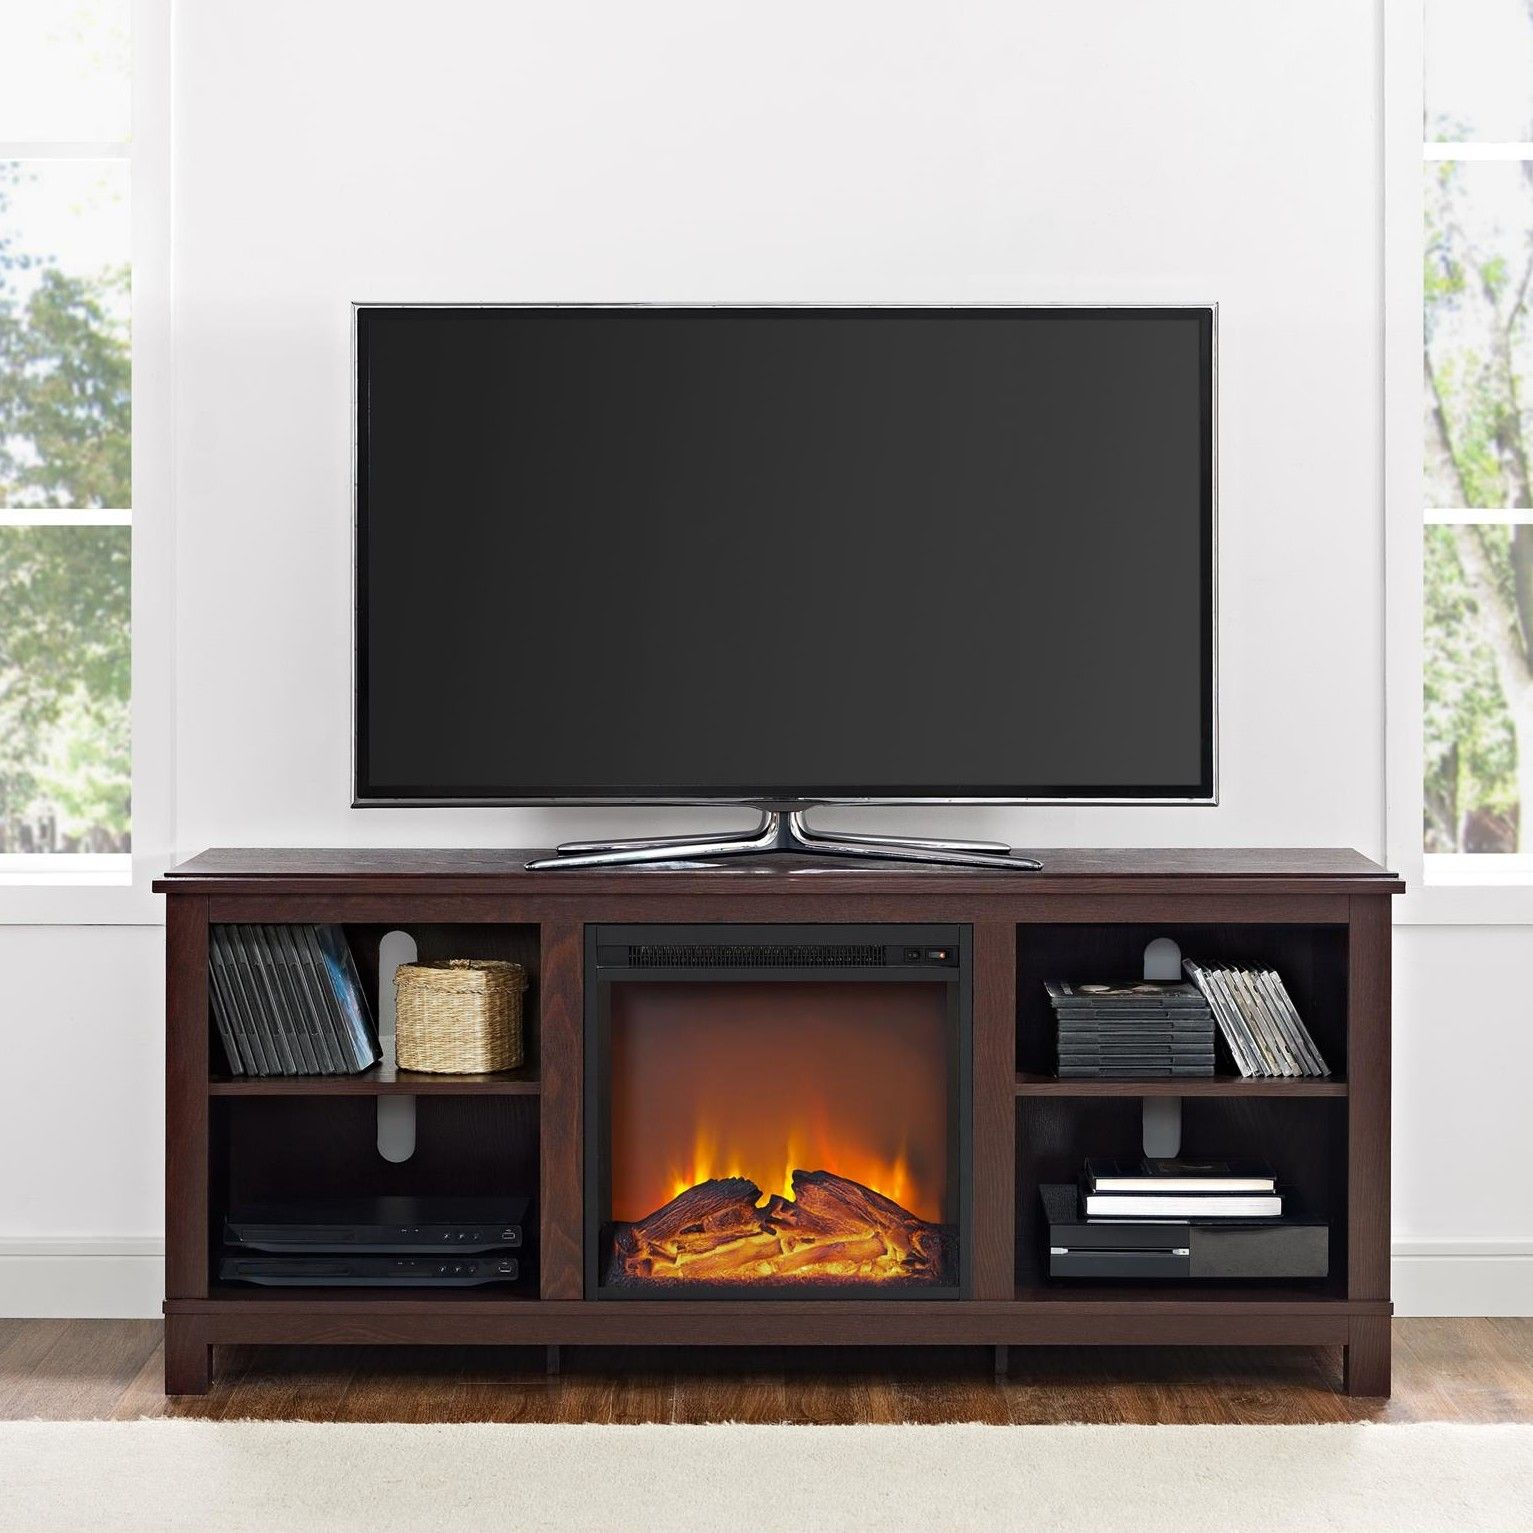 Melvina Media Console With Electric Fireplace Fireplace Tv Stand